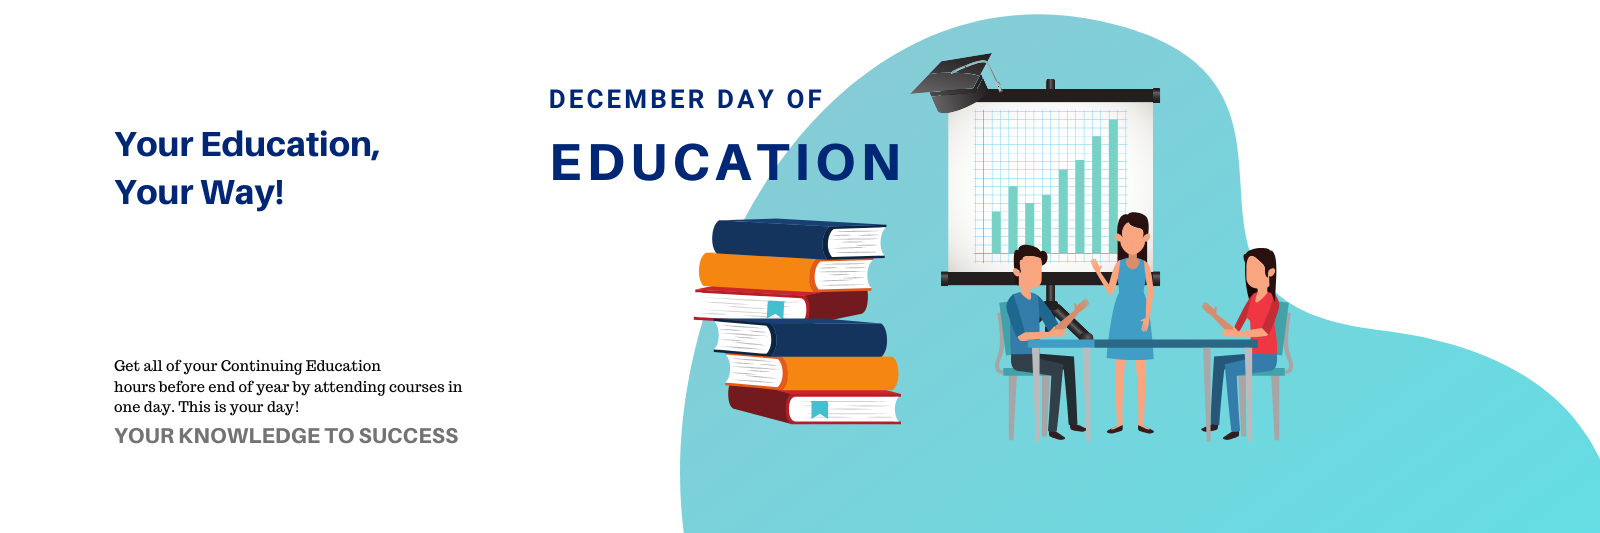 Website-1600-x-533-December-Day-of-Education-(2).png